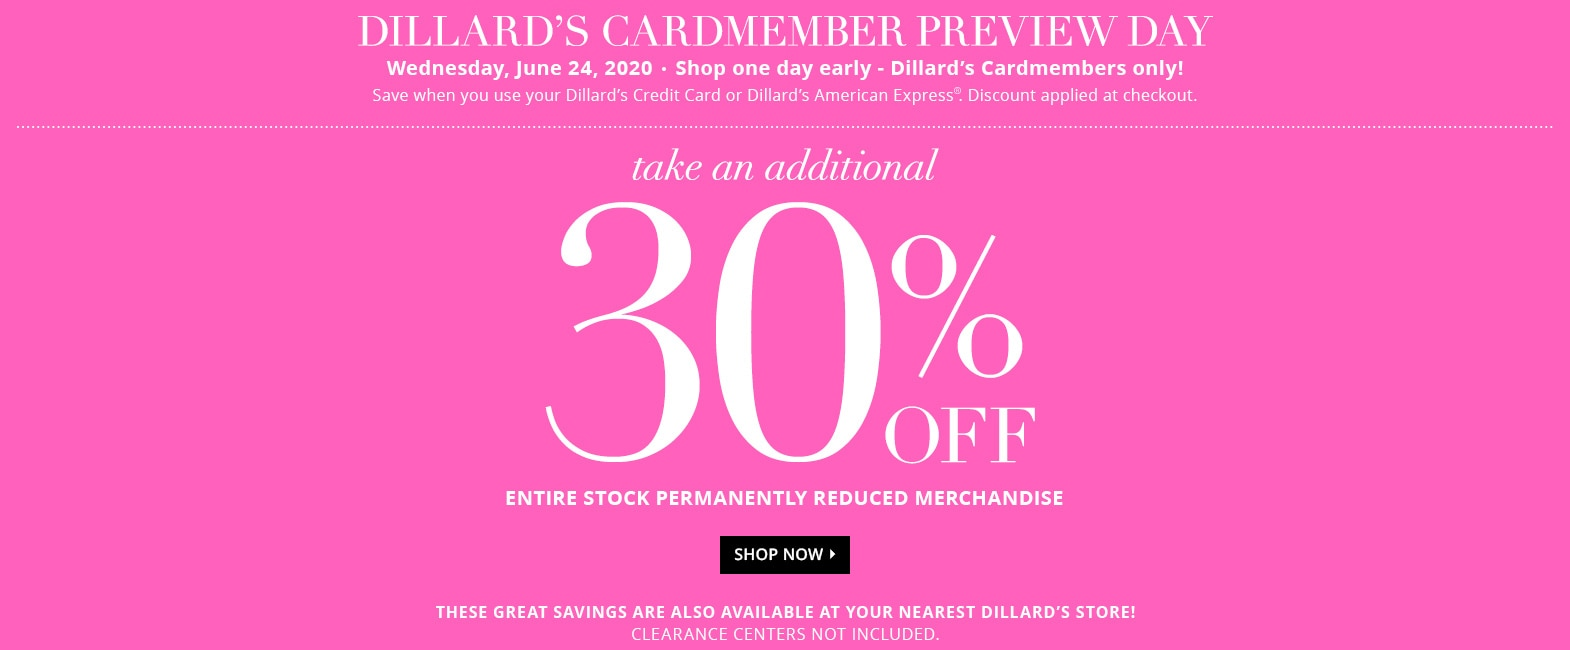 Cardmember Preview Day - 30% off entire stock of permanently reduced merchandise